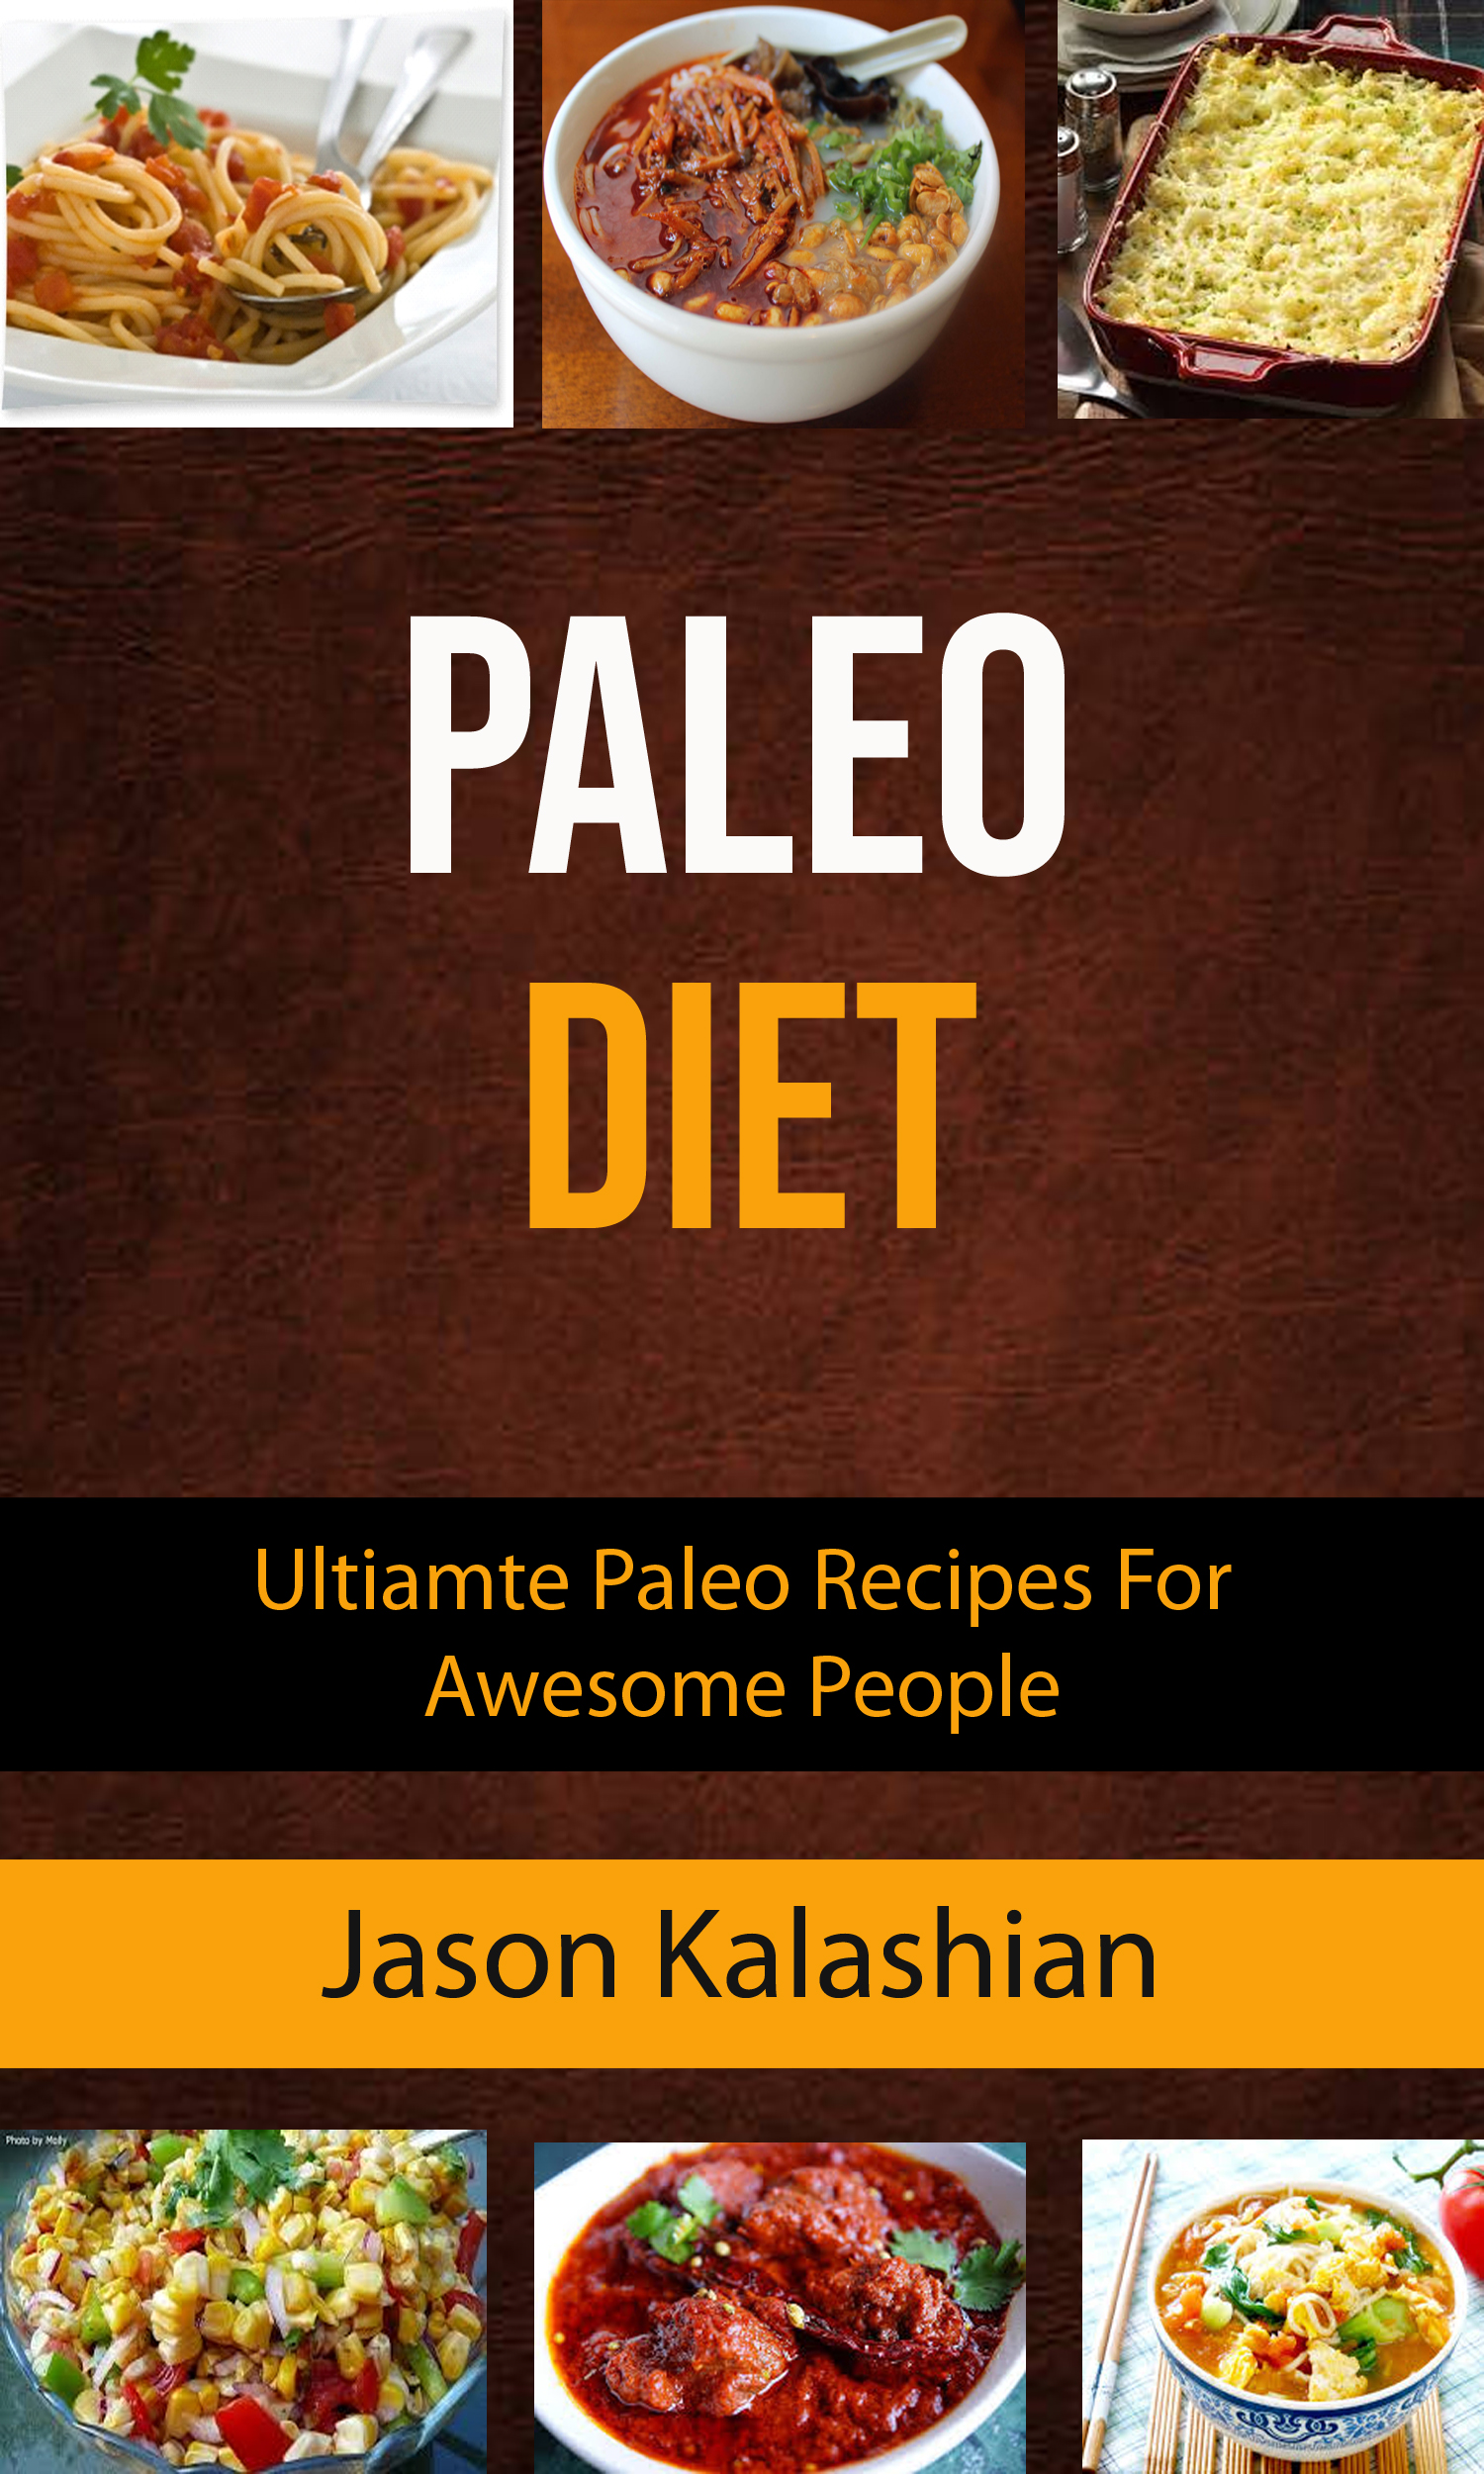 Paleo diet: ultiamte paleo recipes for awesome people